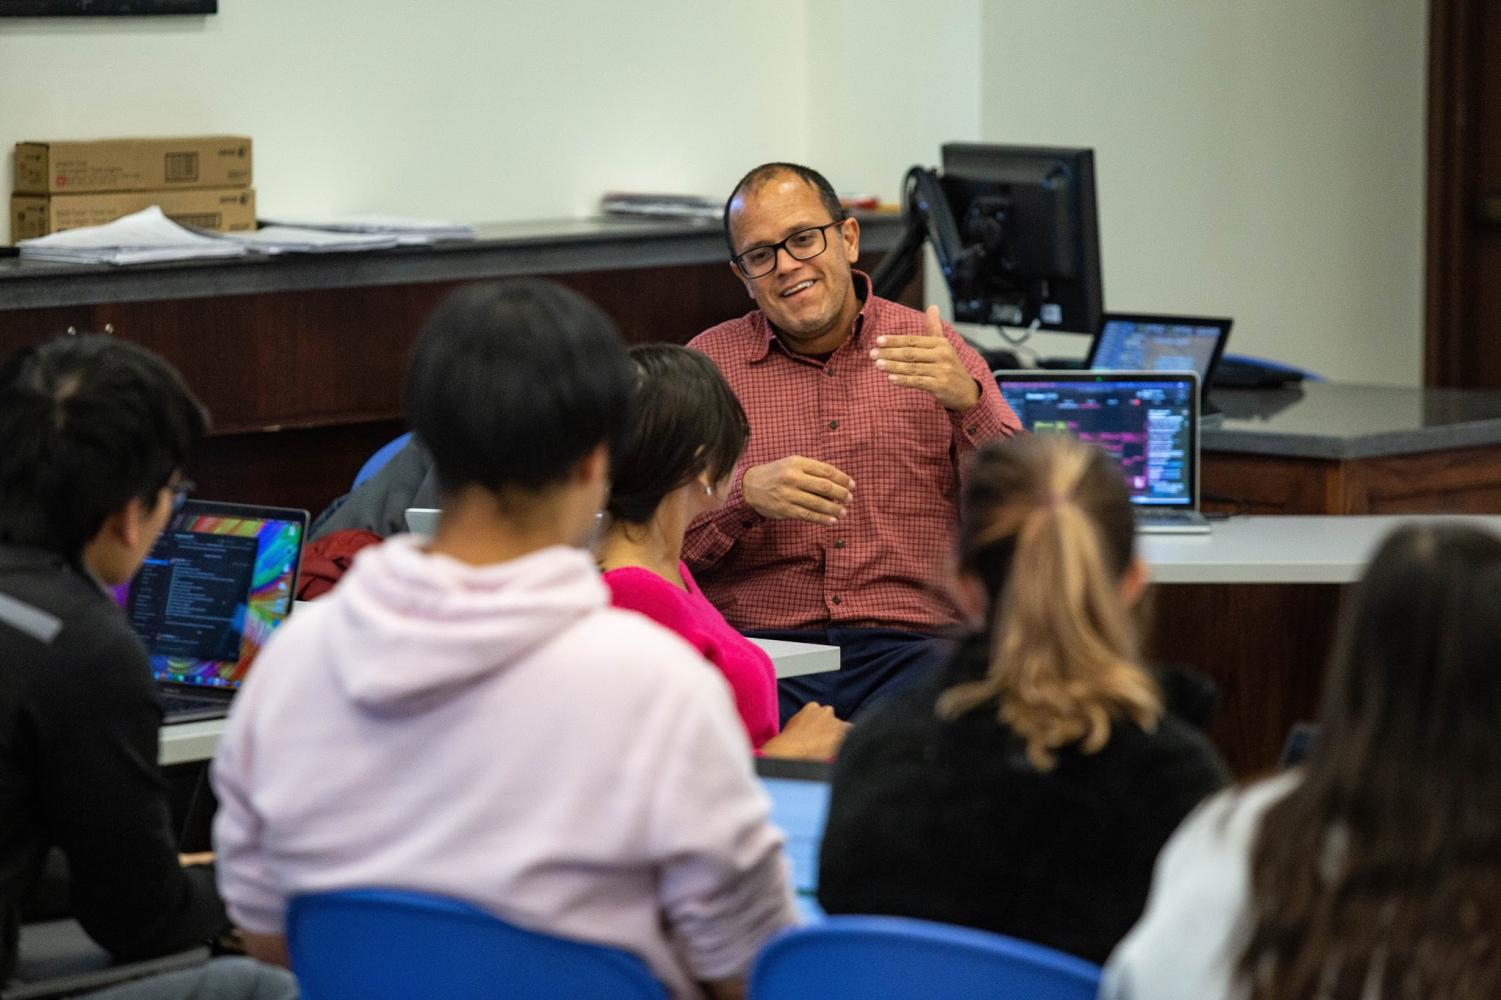 Students gather during a discussion session with Professor Rodriguez. Rodriguez is planning a third service trip to Puerto Rico, this time emphasizing community engagement.